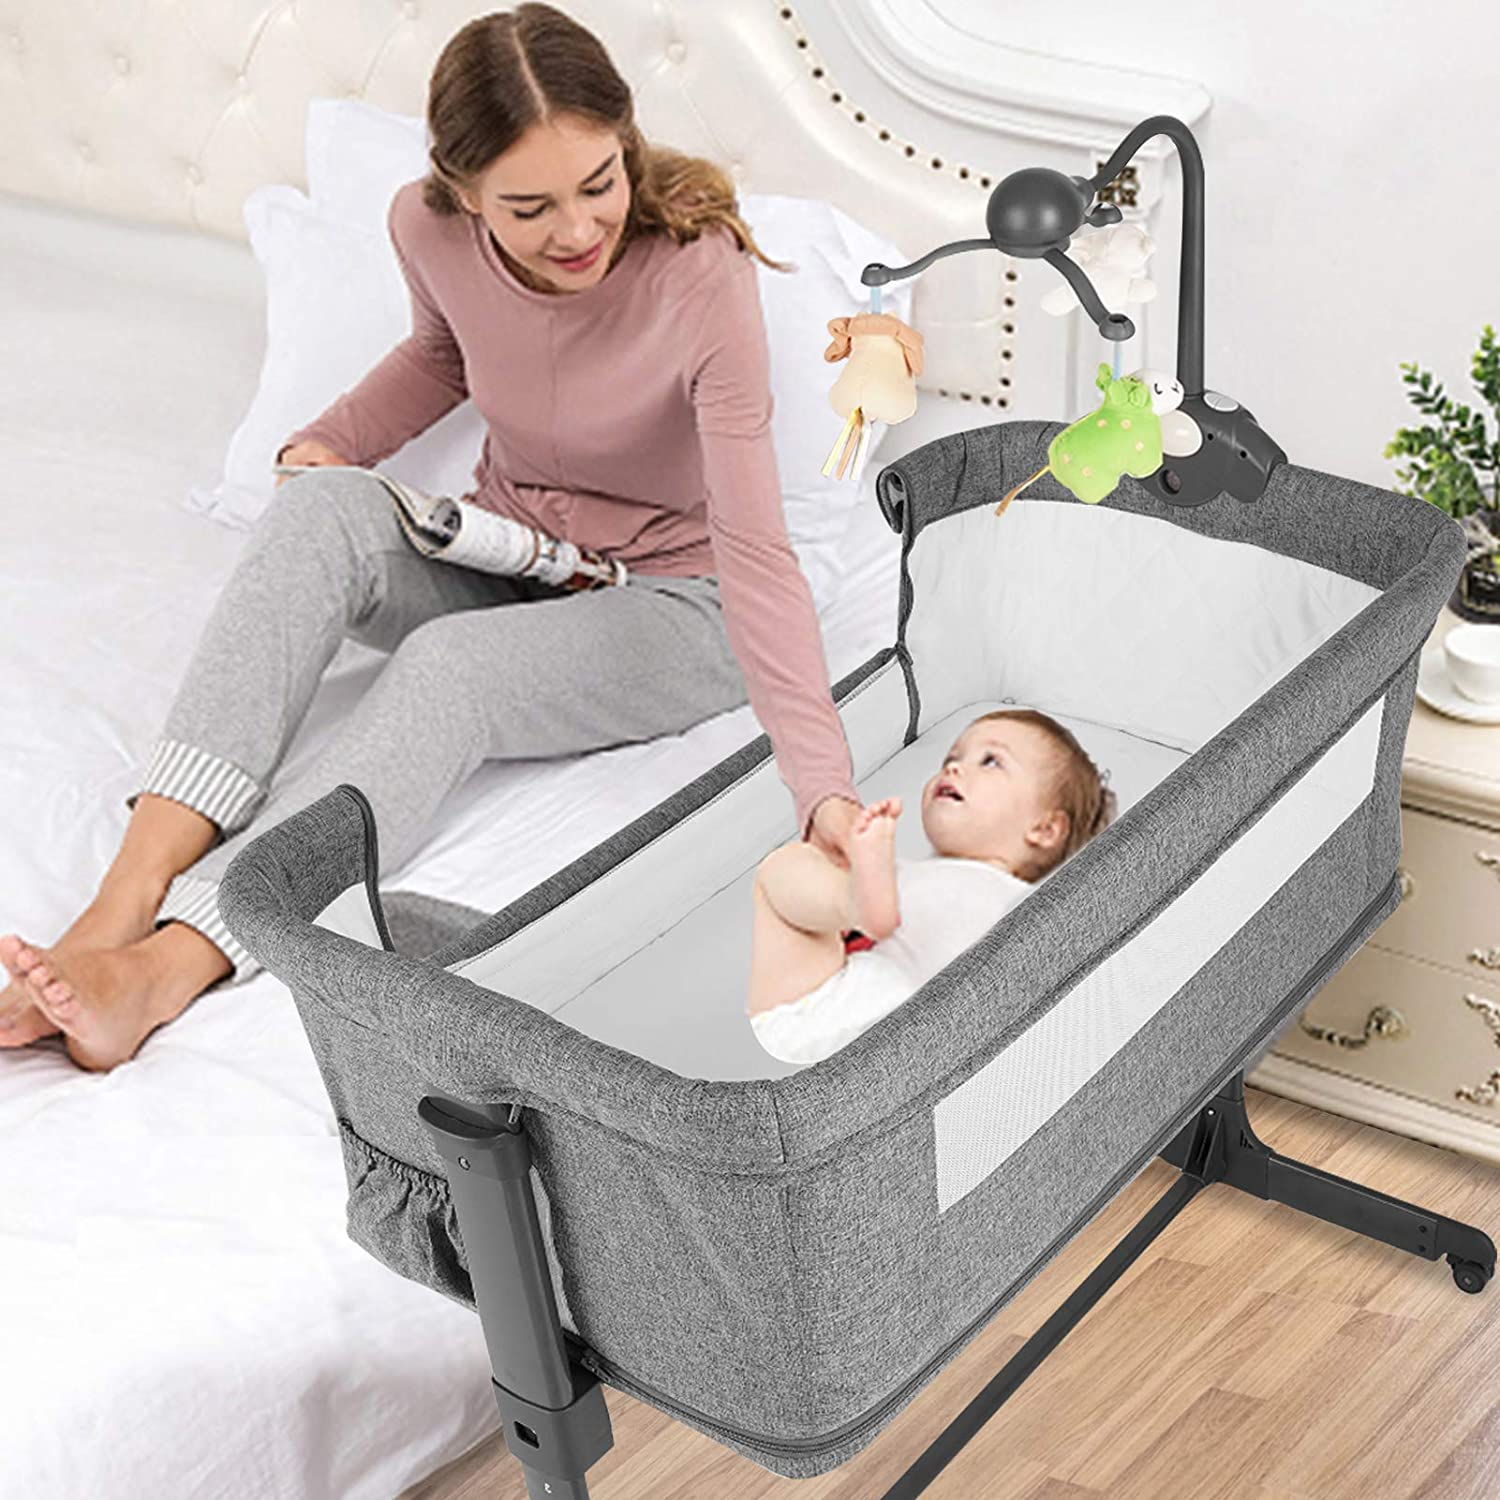 BANIROMAY 4 in 1 Baby Bassinet Beside Sleeper, Baby Travel Crib with Mattress, Adjustable Portable Baby Bed for Newborn Boys Girls